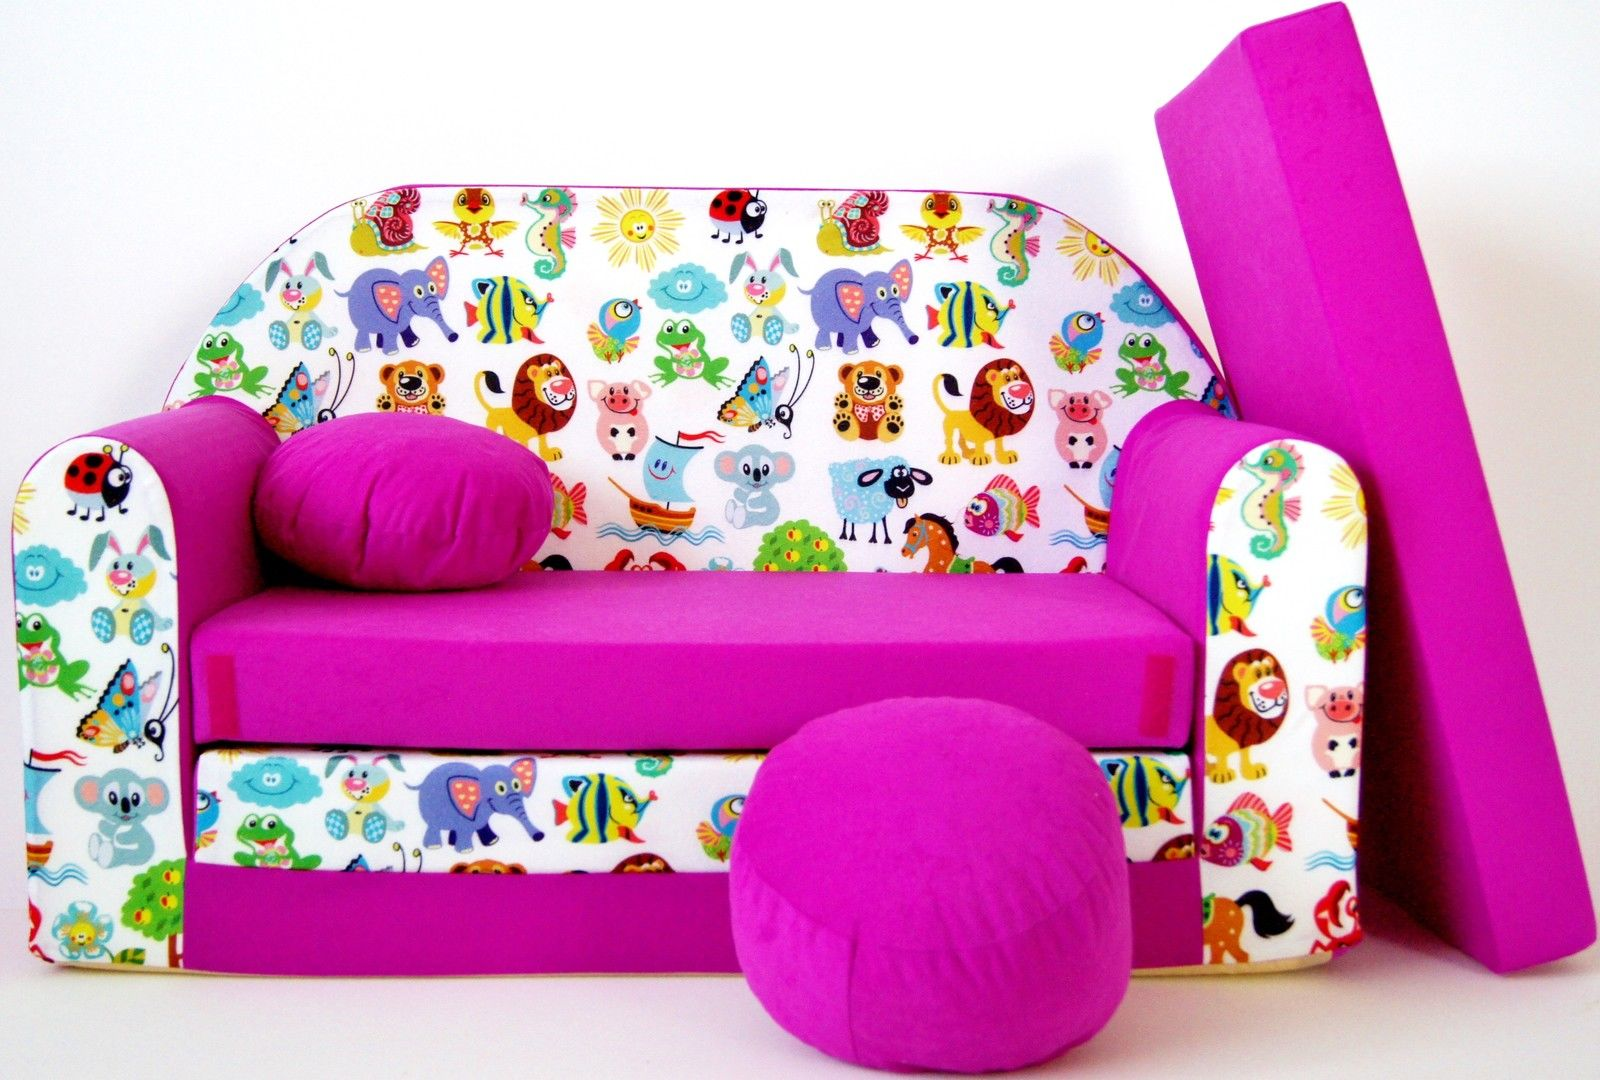 Childrens Sofa Bed Type W, Fold Out Sofa Foam Bed For Children + Free Pillow